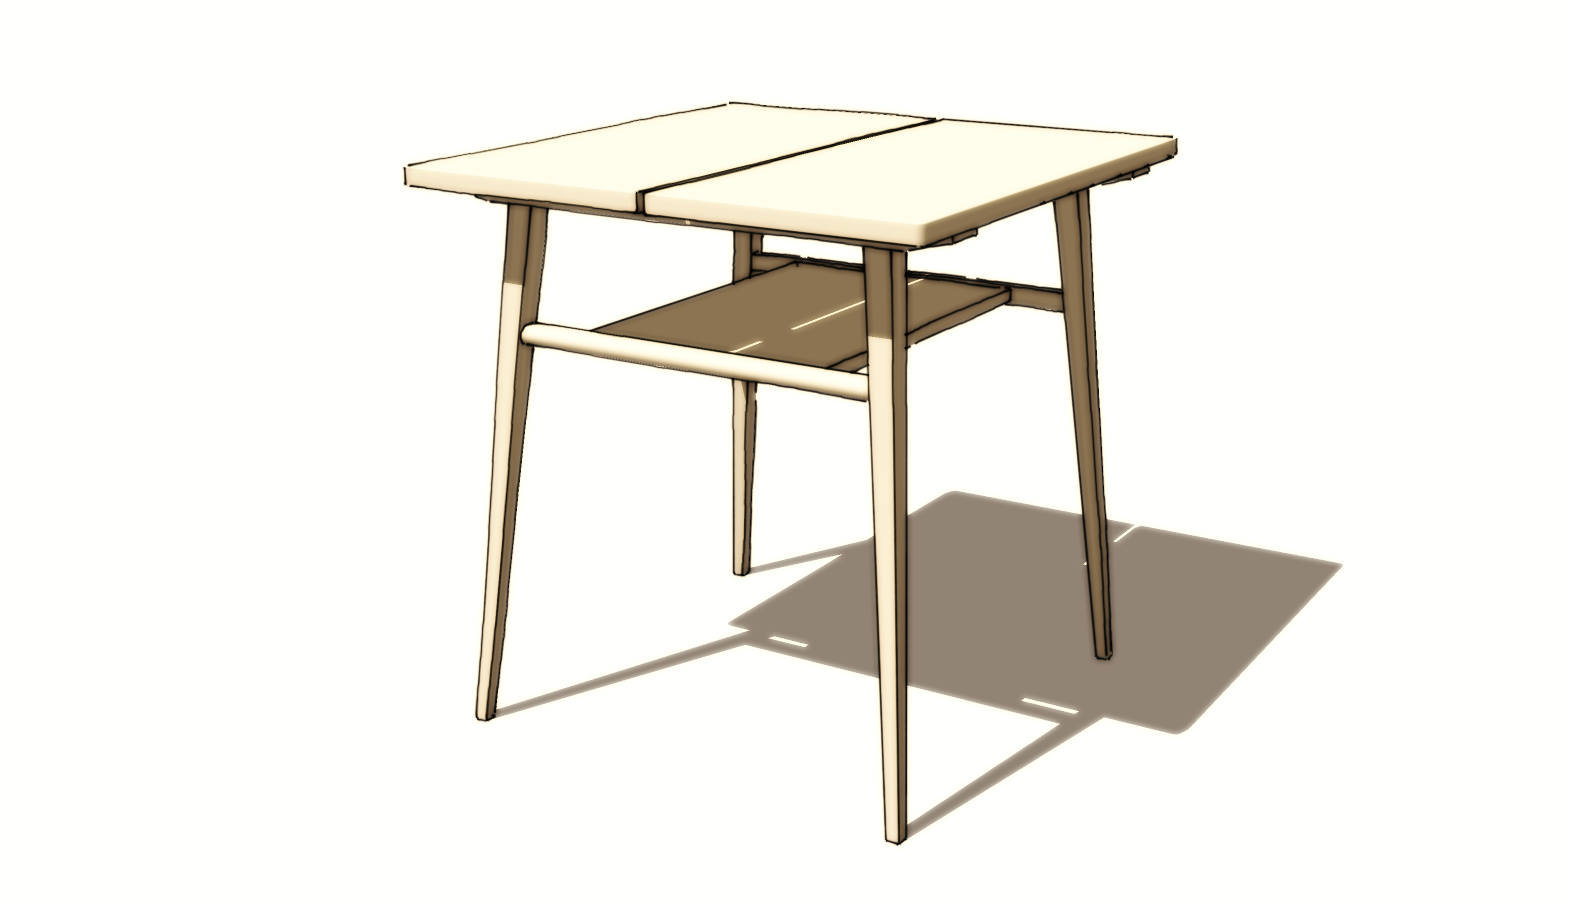 Sketchup Modeling Table And Stool Legs With Rake And